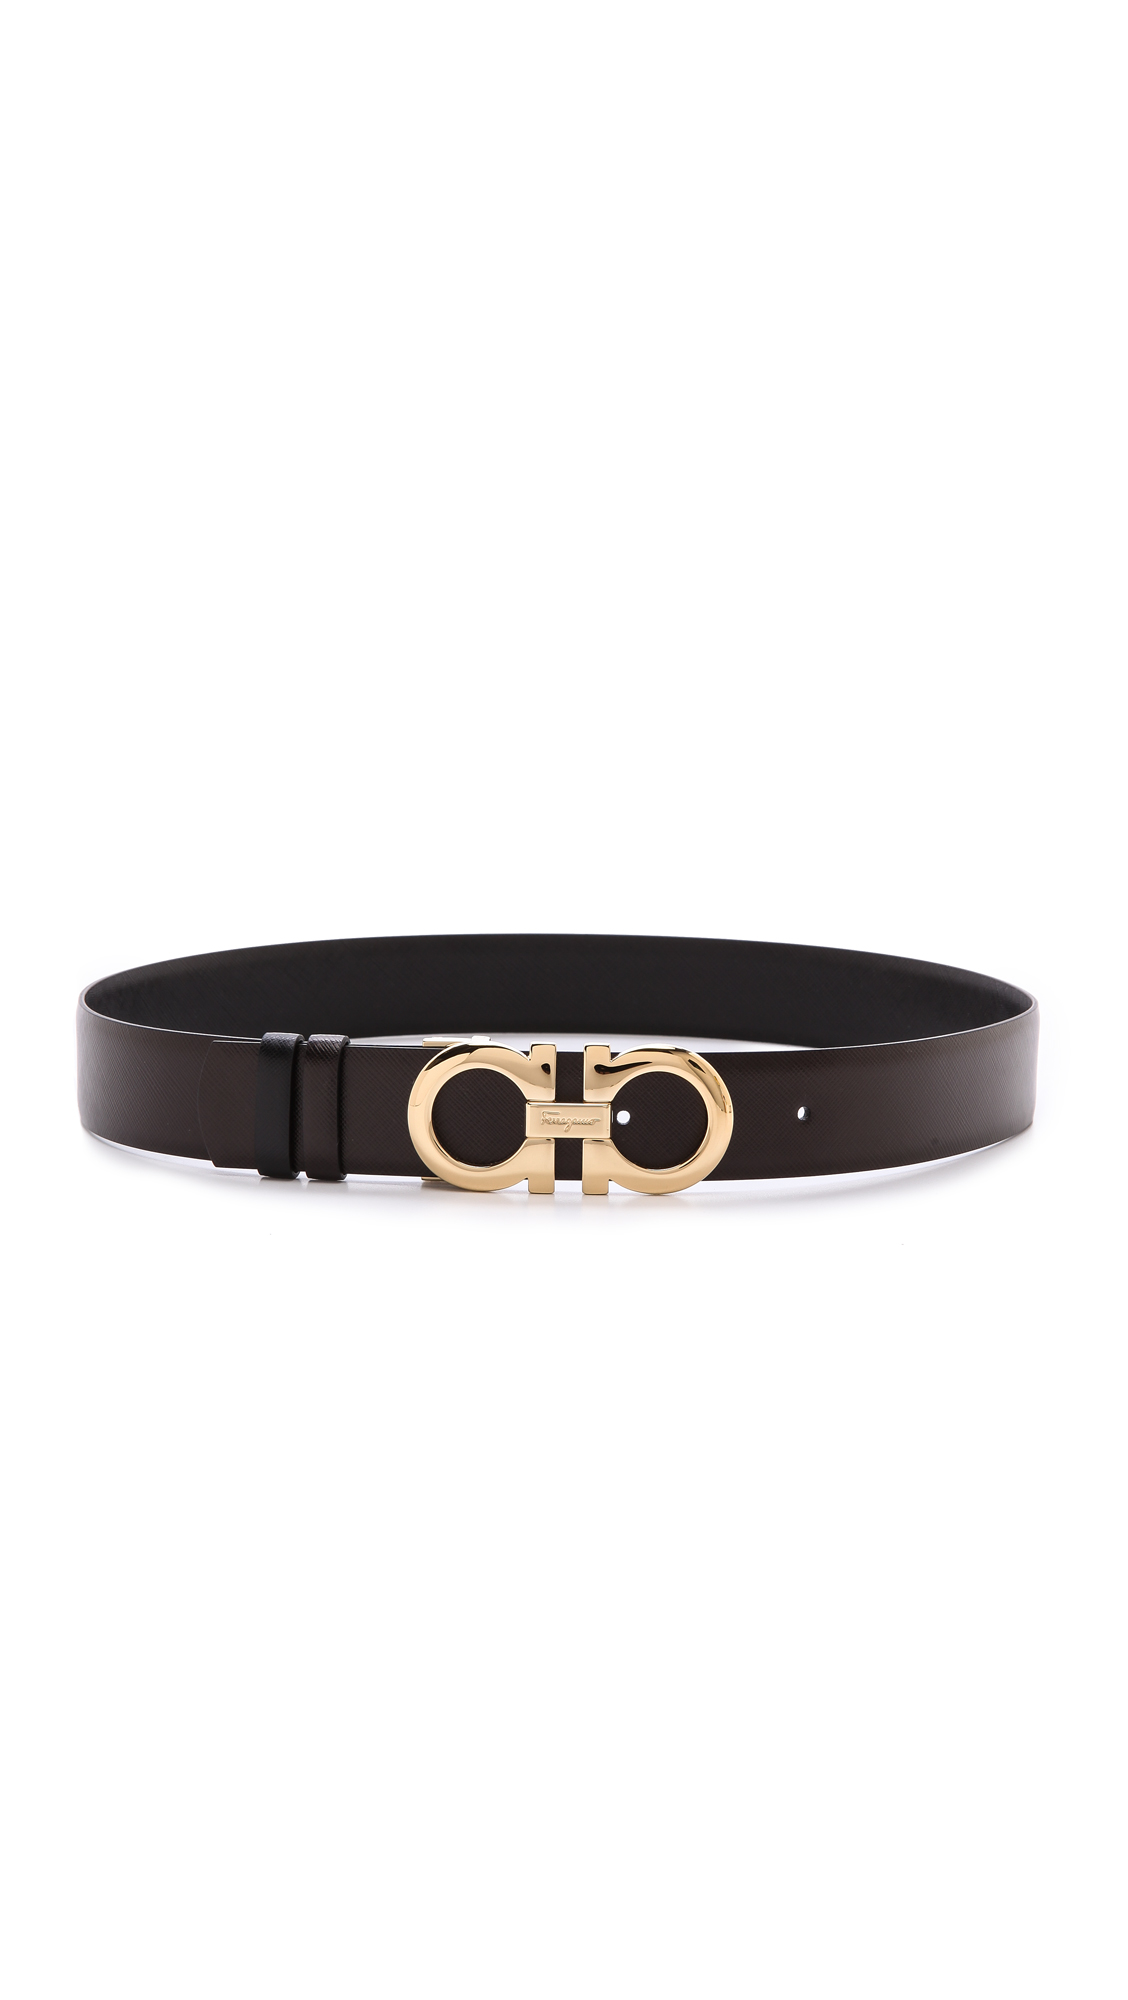 Salvatore Ferragamo Medium Giancini Reversible Belt - Dark Brown/Black